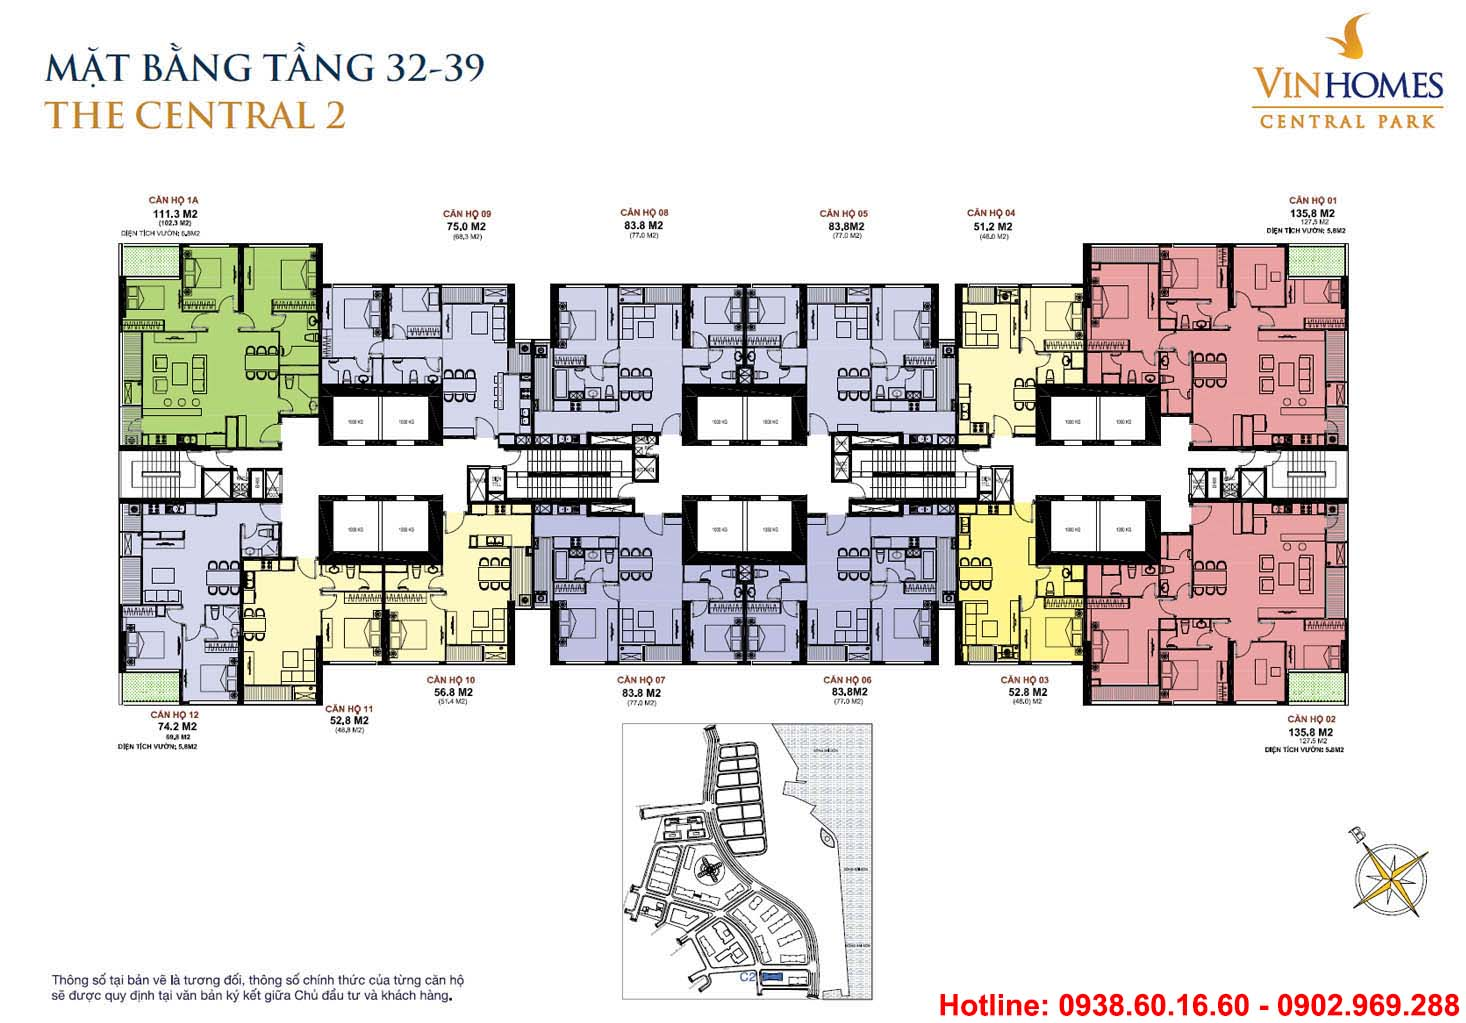 Mặt Bằng Tằng 32-39 -Central 2